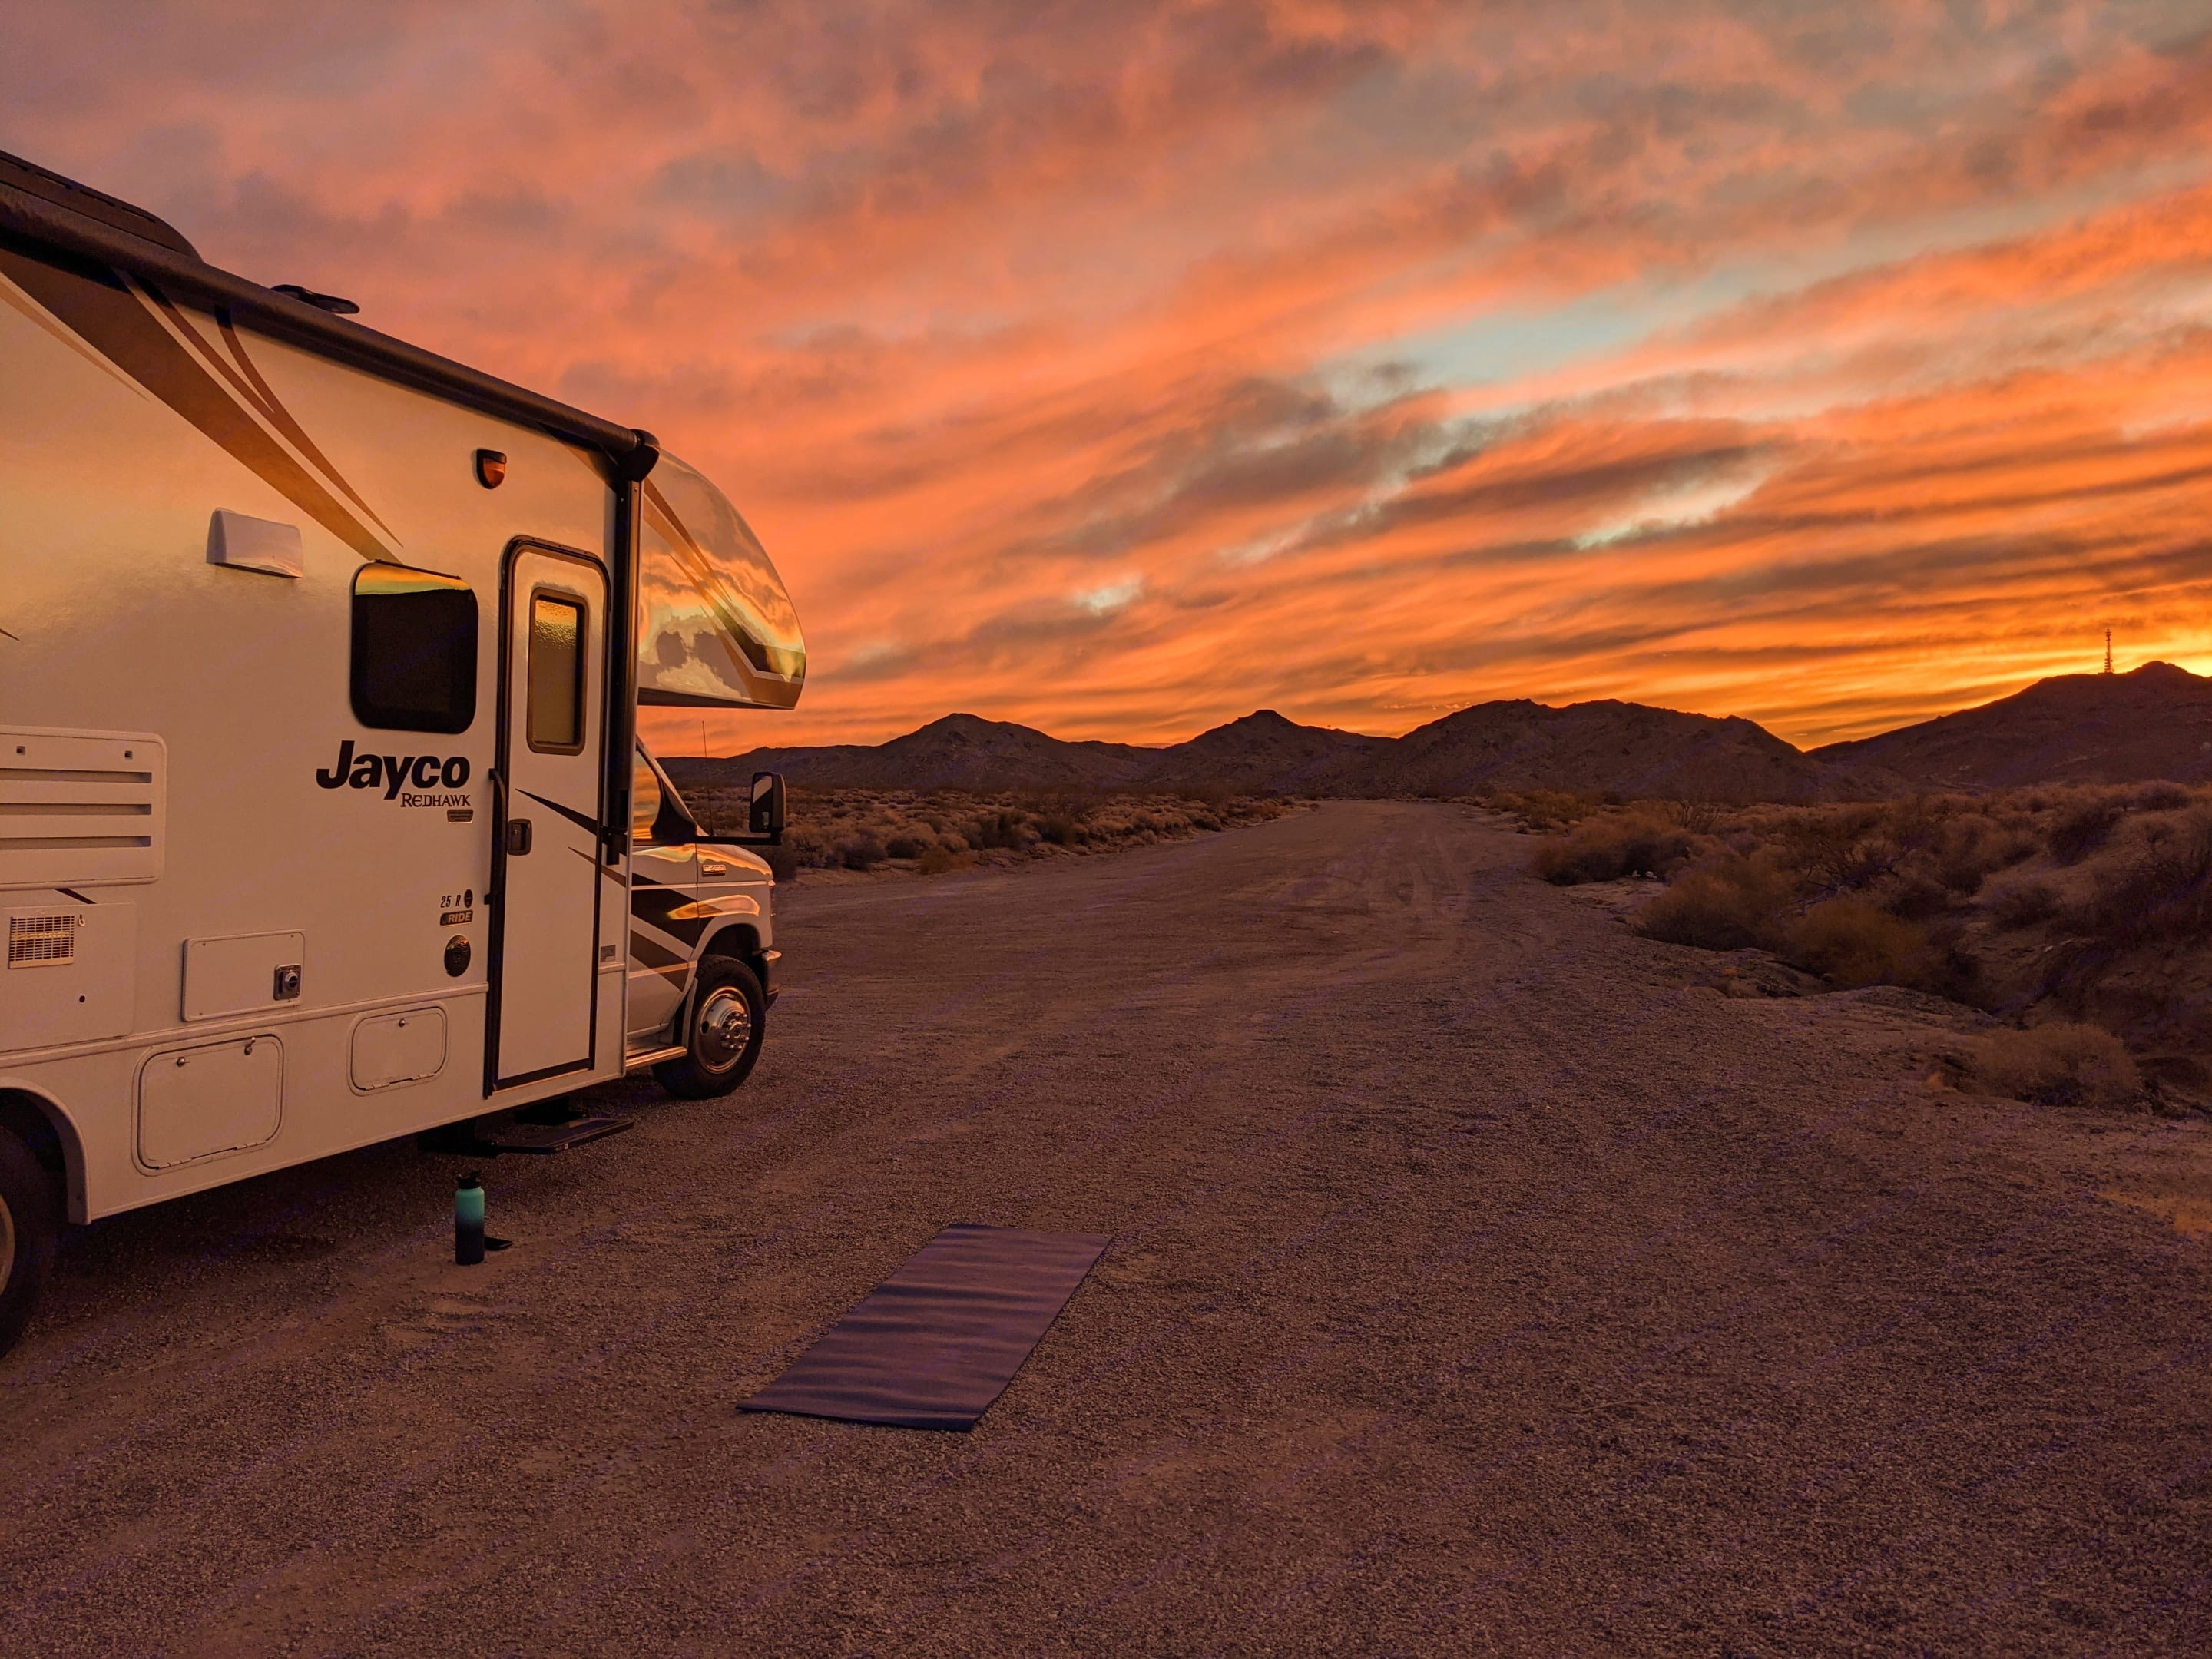 Whether you're looking for relaxation or adventure, an RV makes a perfect choice for your next family vacation. . Jayco Redhawk 2020